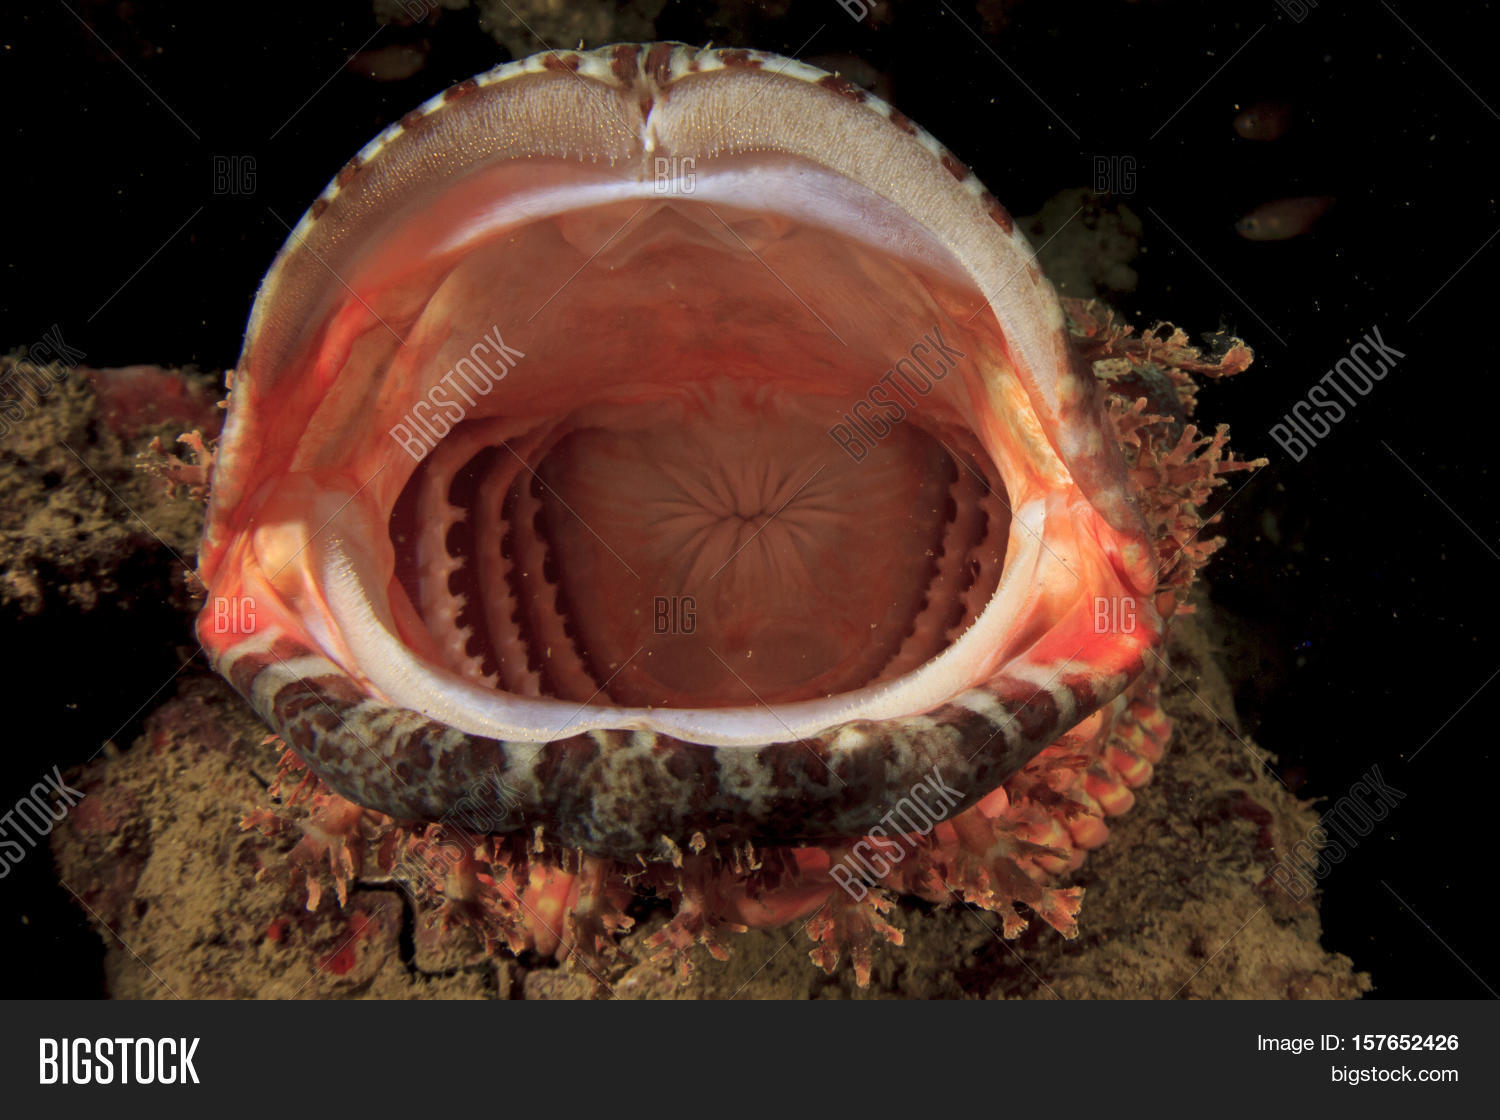 Fish Mouth Image Photo Free Trial Bigstock